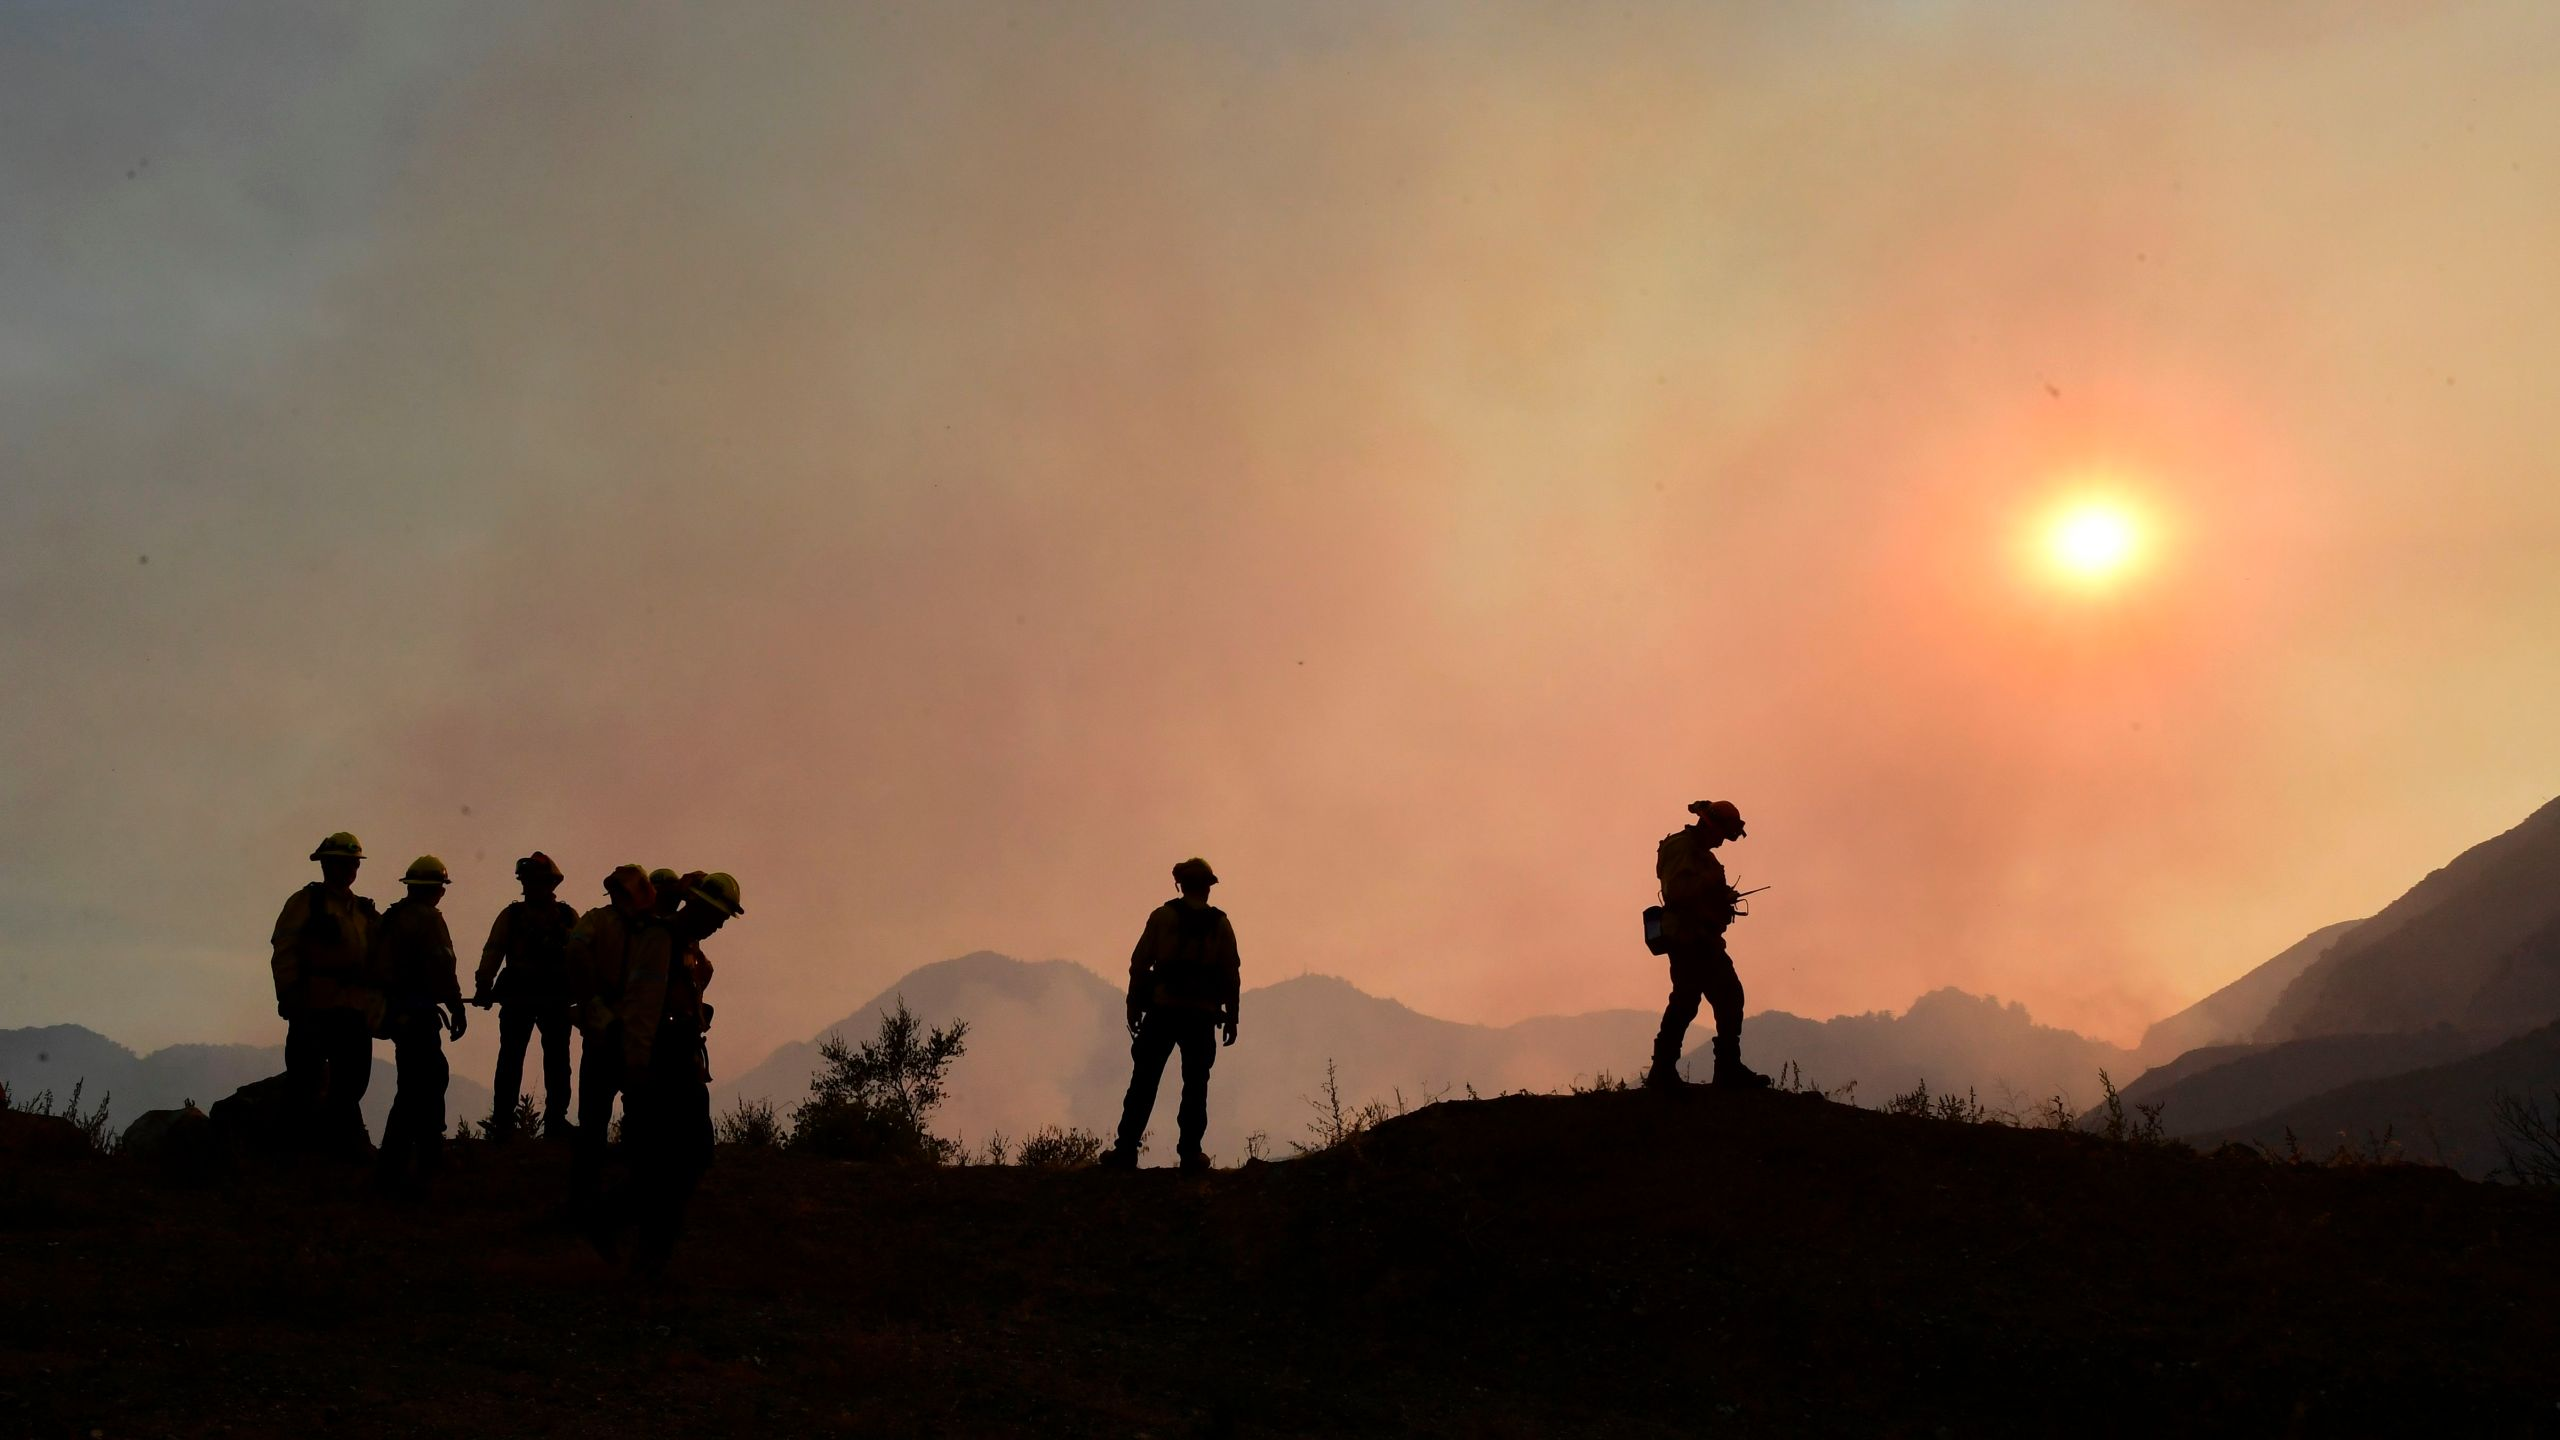 Firefighters position themselves on a ridge overlooking smouldering fires from the Bobcat Fire in a valley below in the Angeles National Forest on Sept. 23, 2020 in Los Angeles. (FREDERIC J. BROWN/AFP via Getty Images)